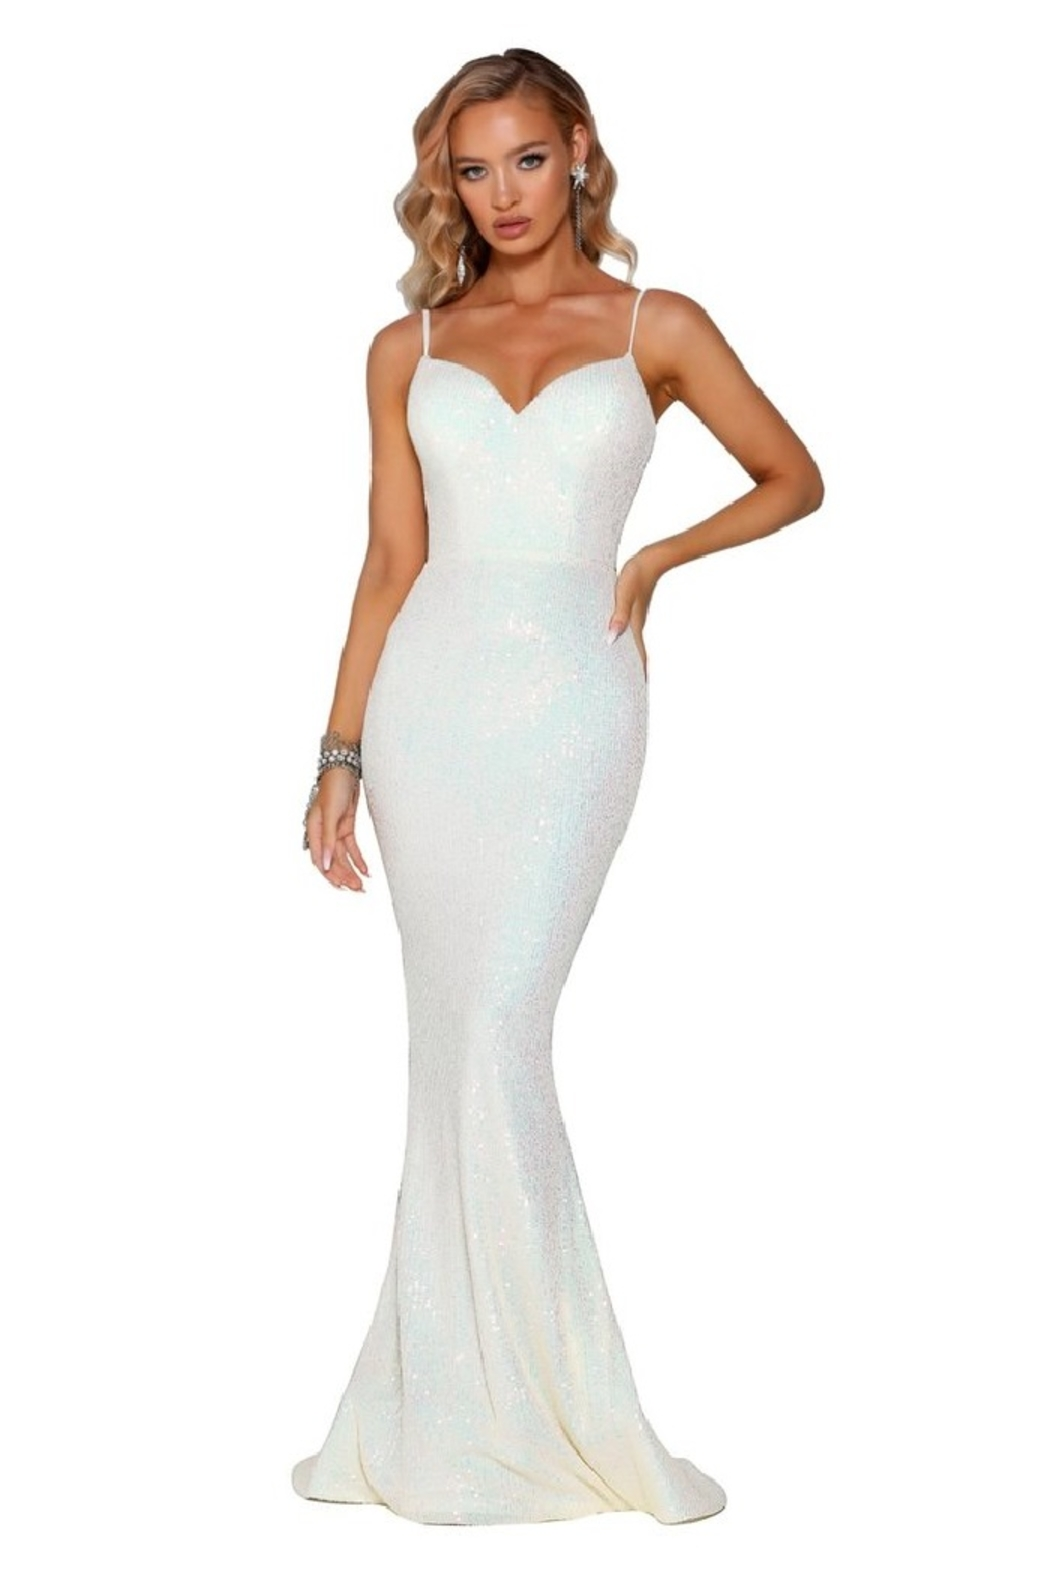 PORTIA AND SCARLETT Pearl Sequin Fit & Flare Long Formal Dress - Main Image